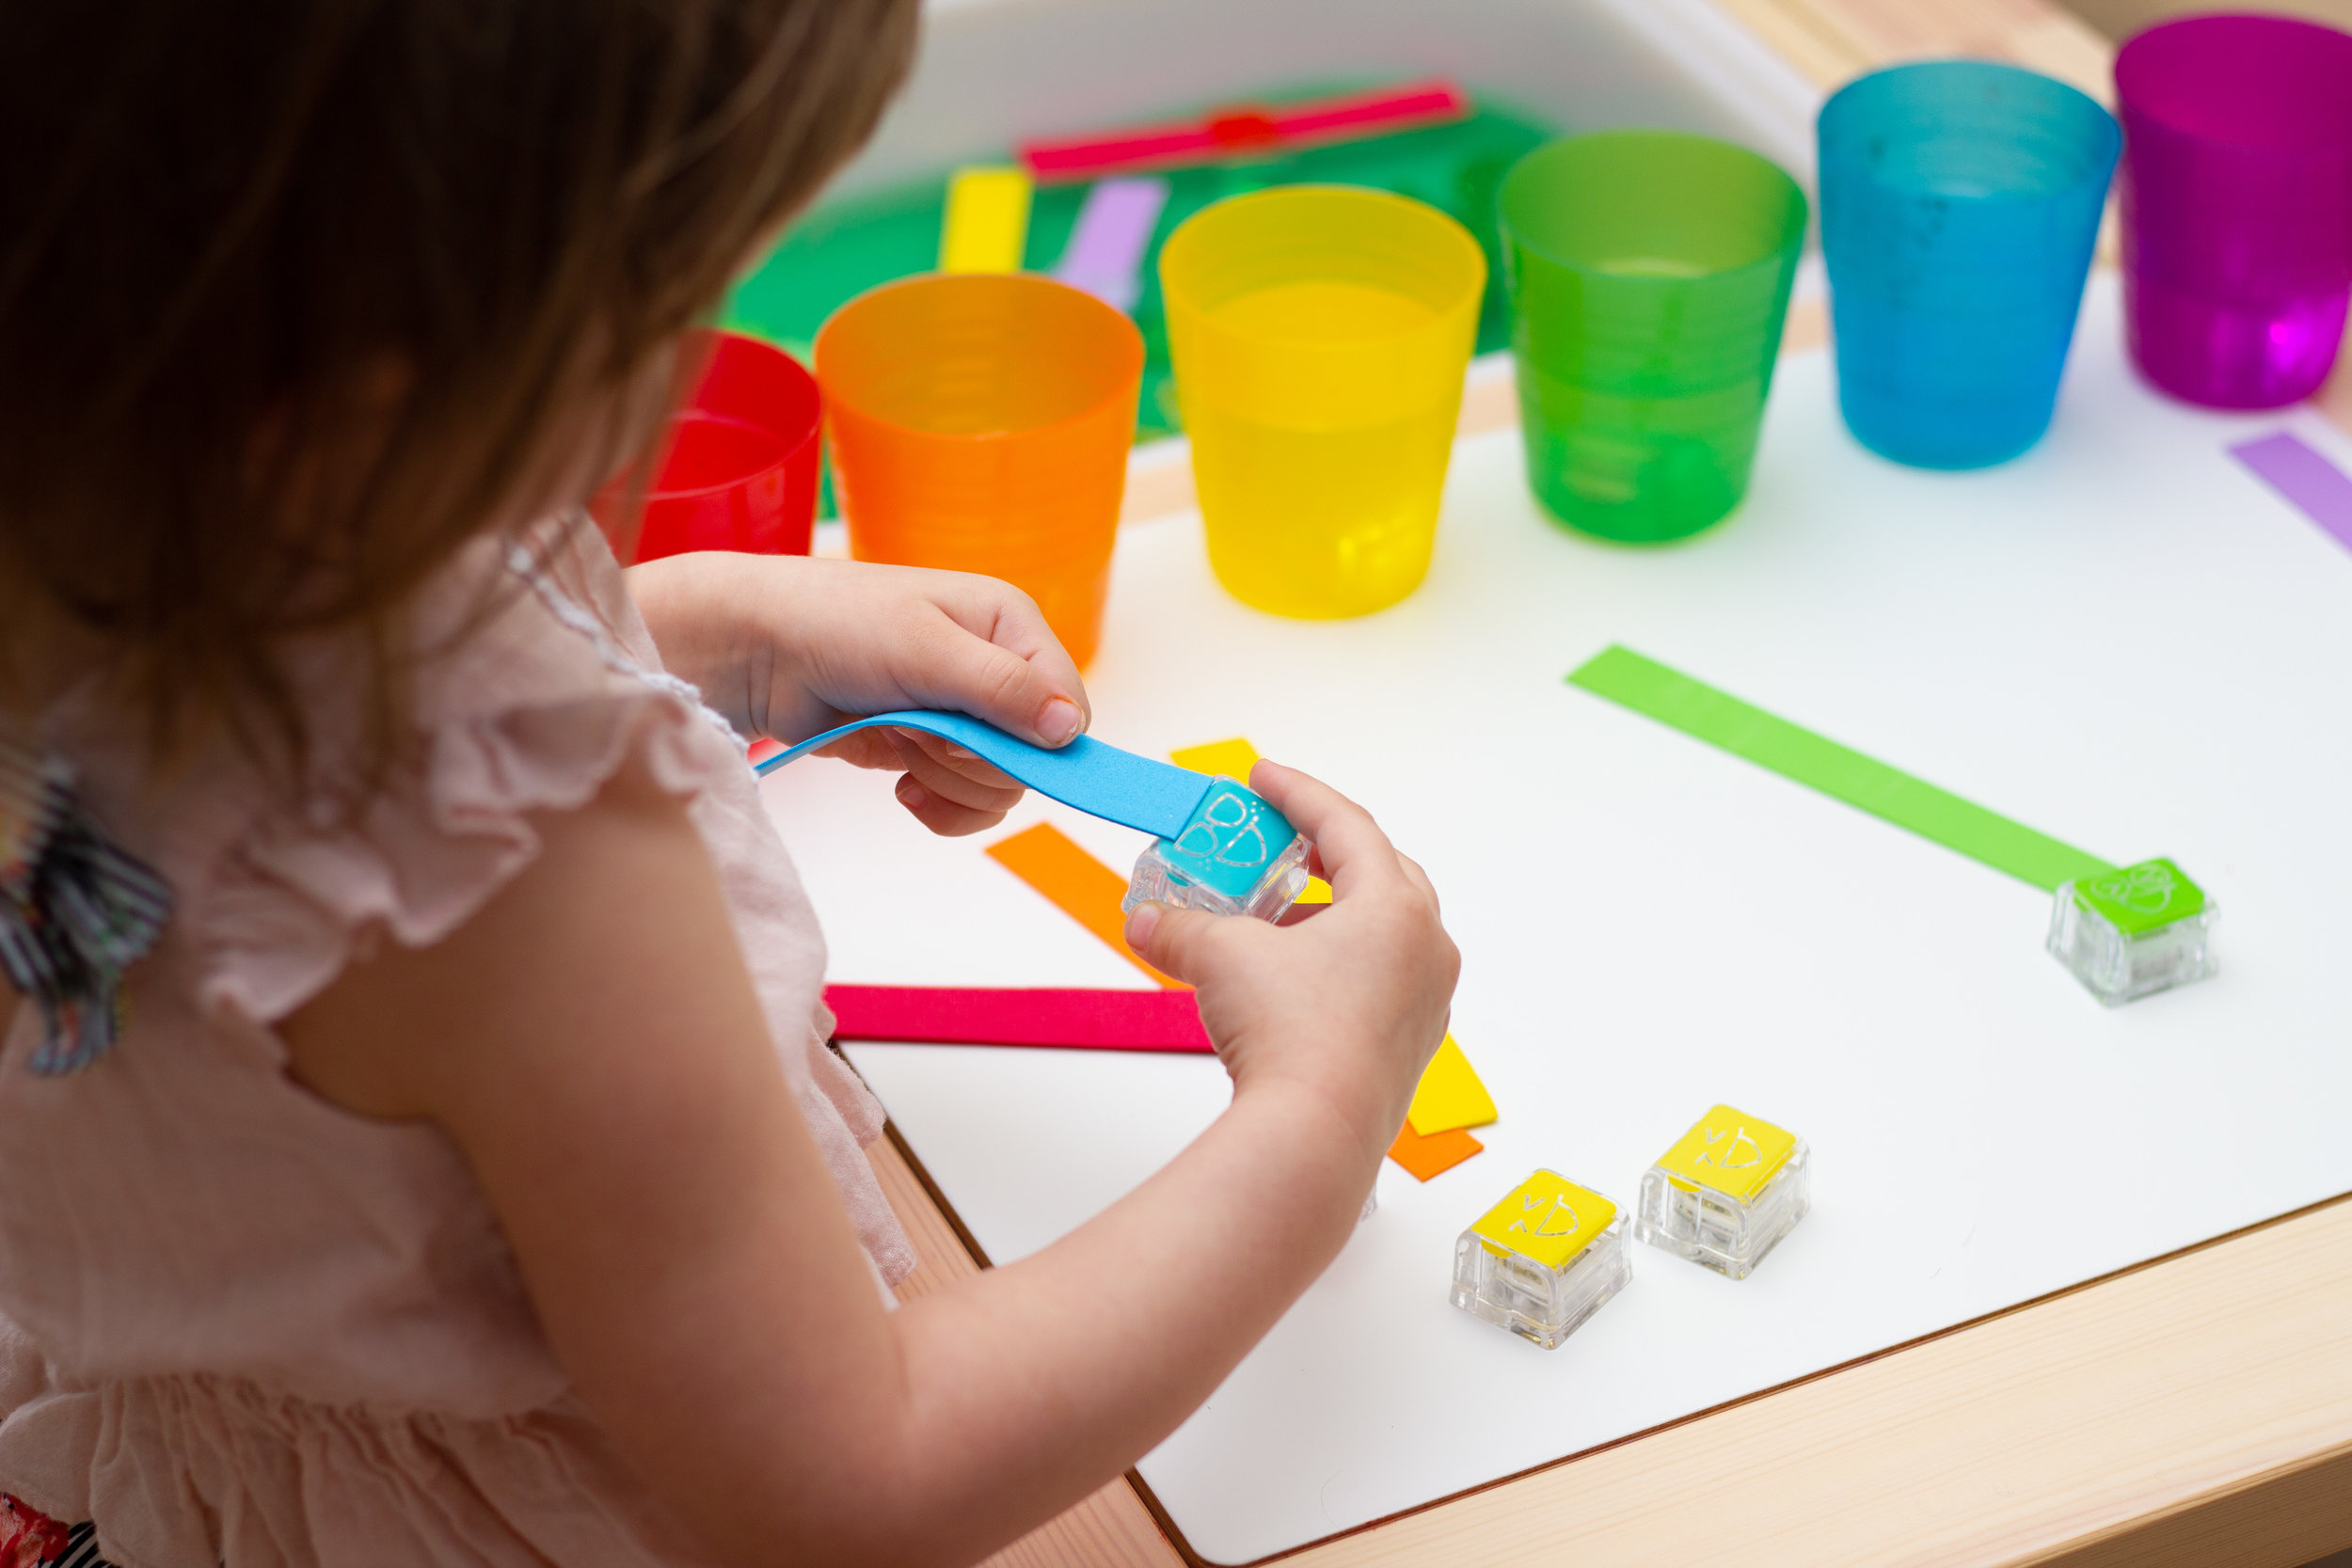 Fine Motor - Threading craft foam through the Glo Pals encourages fine motor and color sorting skills